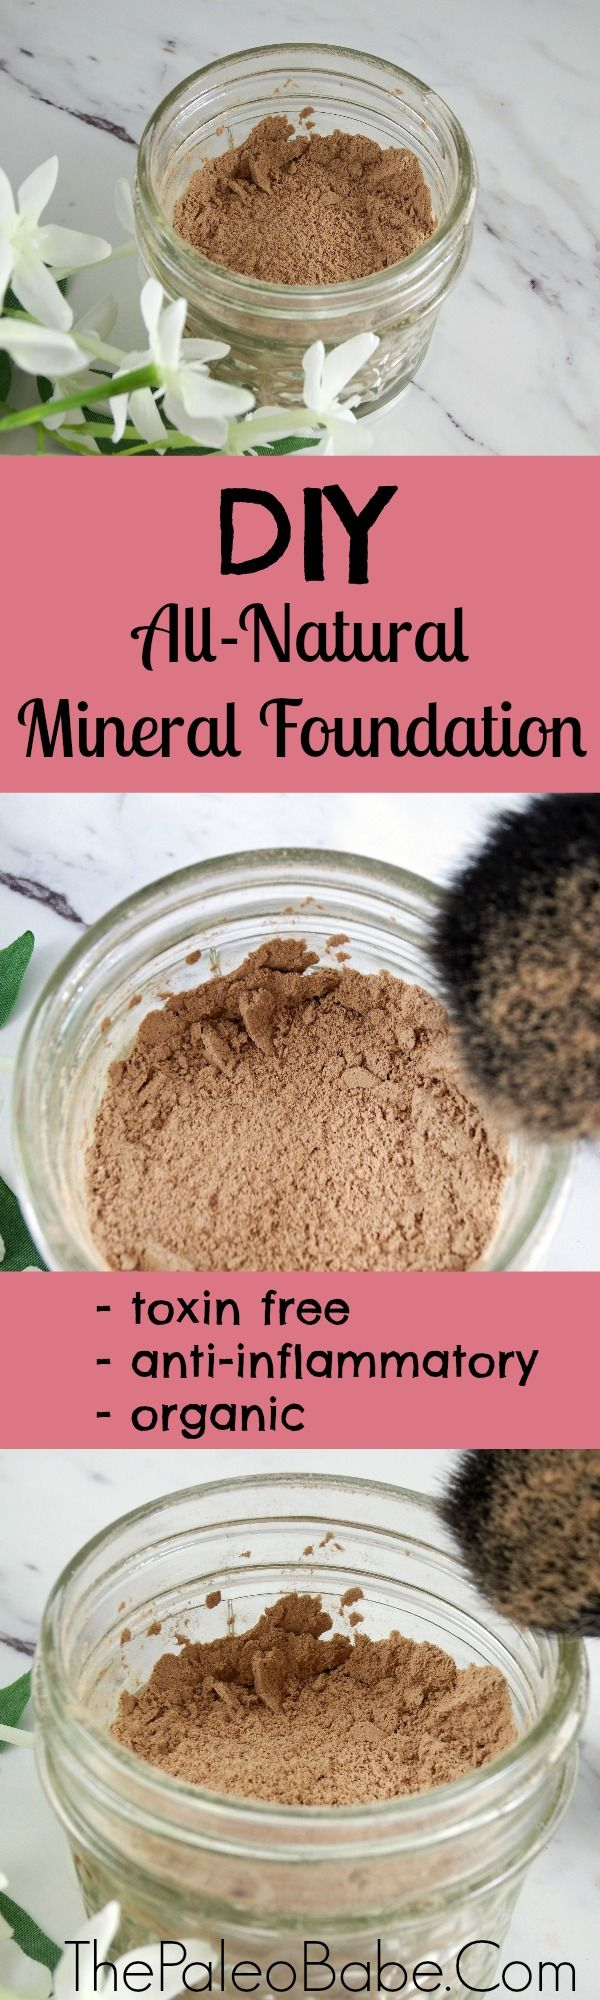 154 best diy make up images on pinterest make up looks homemade make your own diy natural mineral loose powder foundation out of ingredients your probably already have solutioingenieria Images